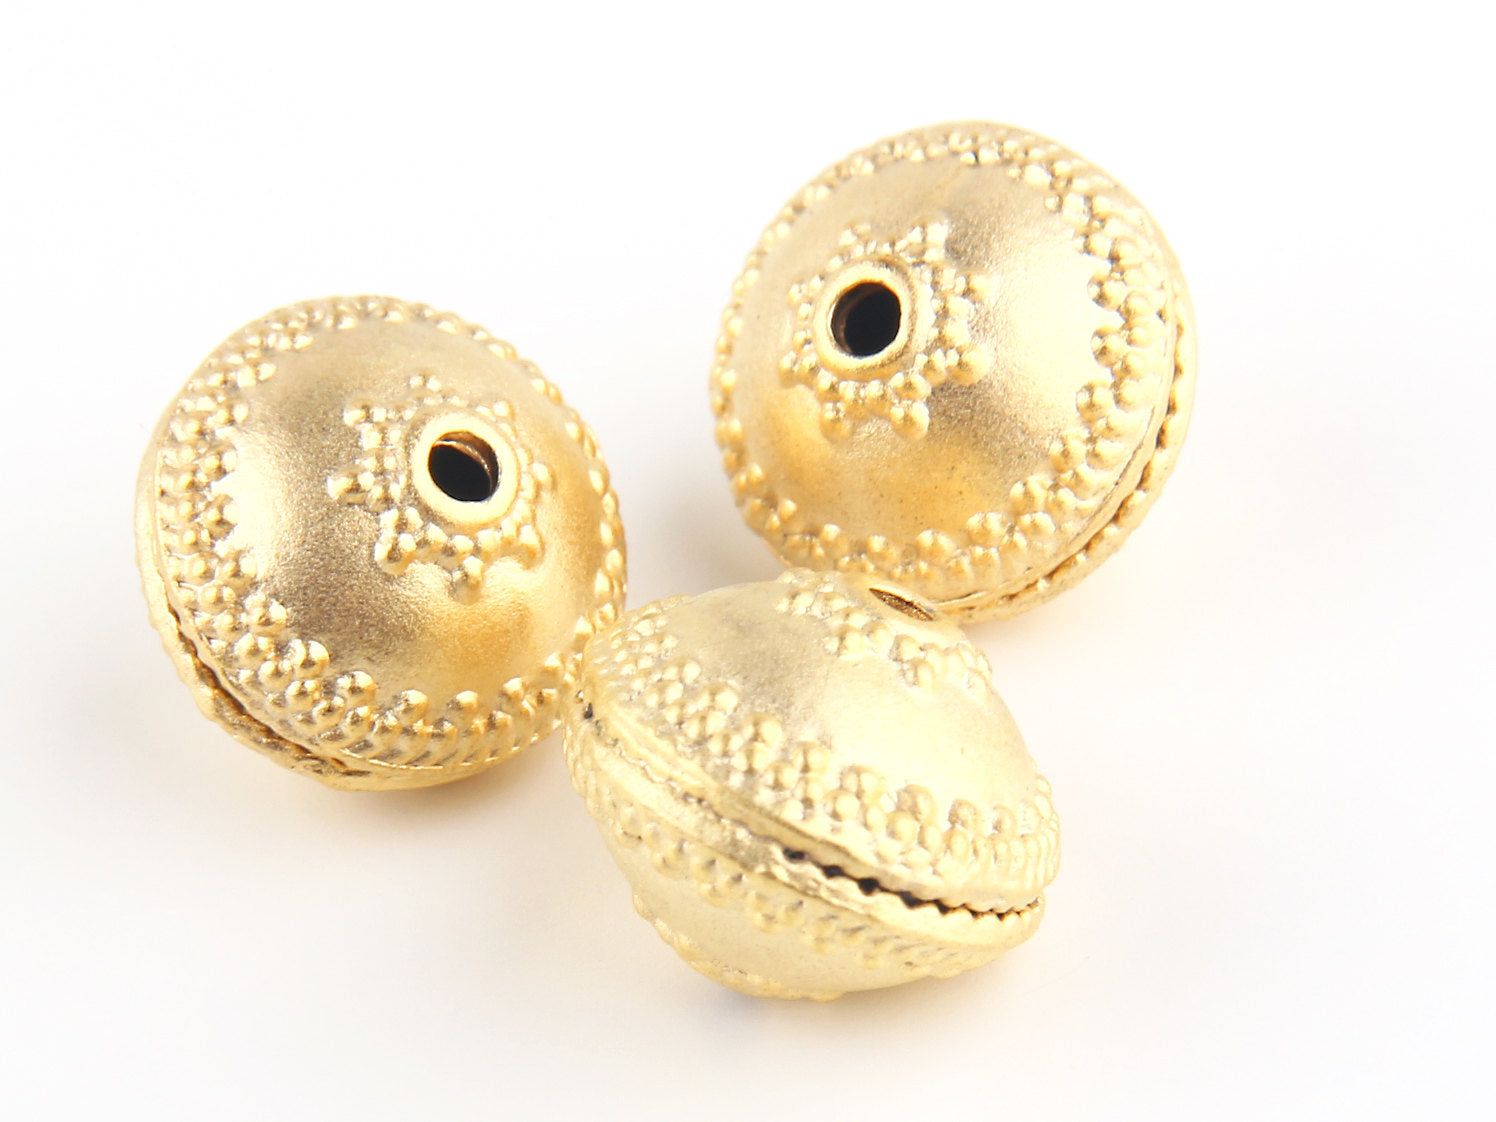 Matte Gold Large Dotted Saucer Beads, Saucers Beads, Bead Spacers,3 pieces // GB-106